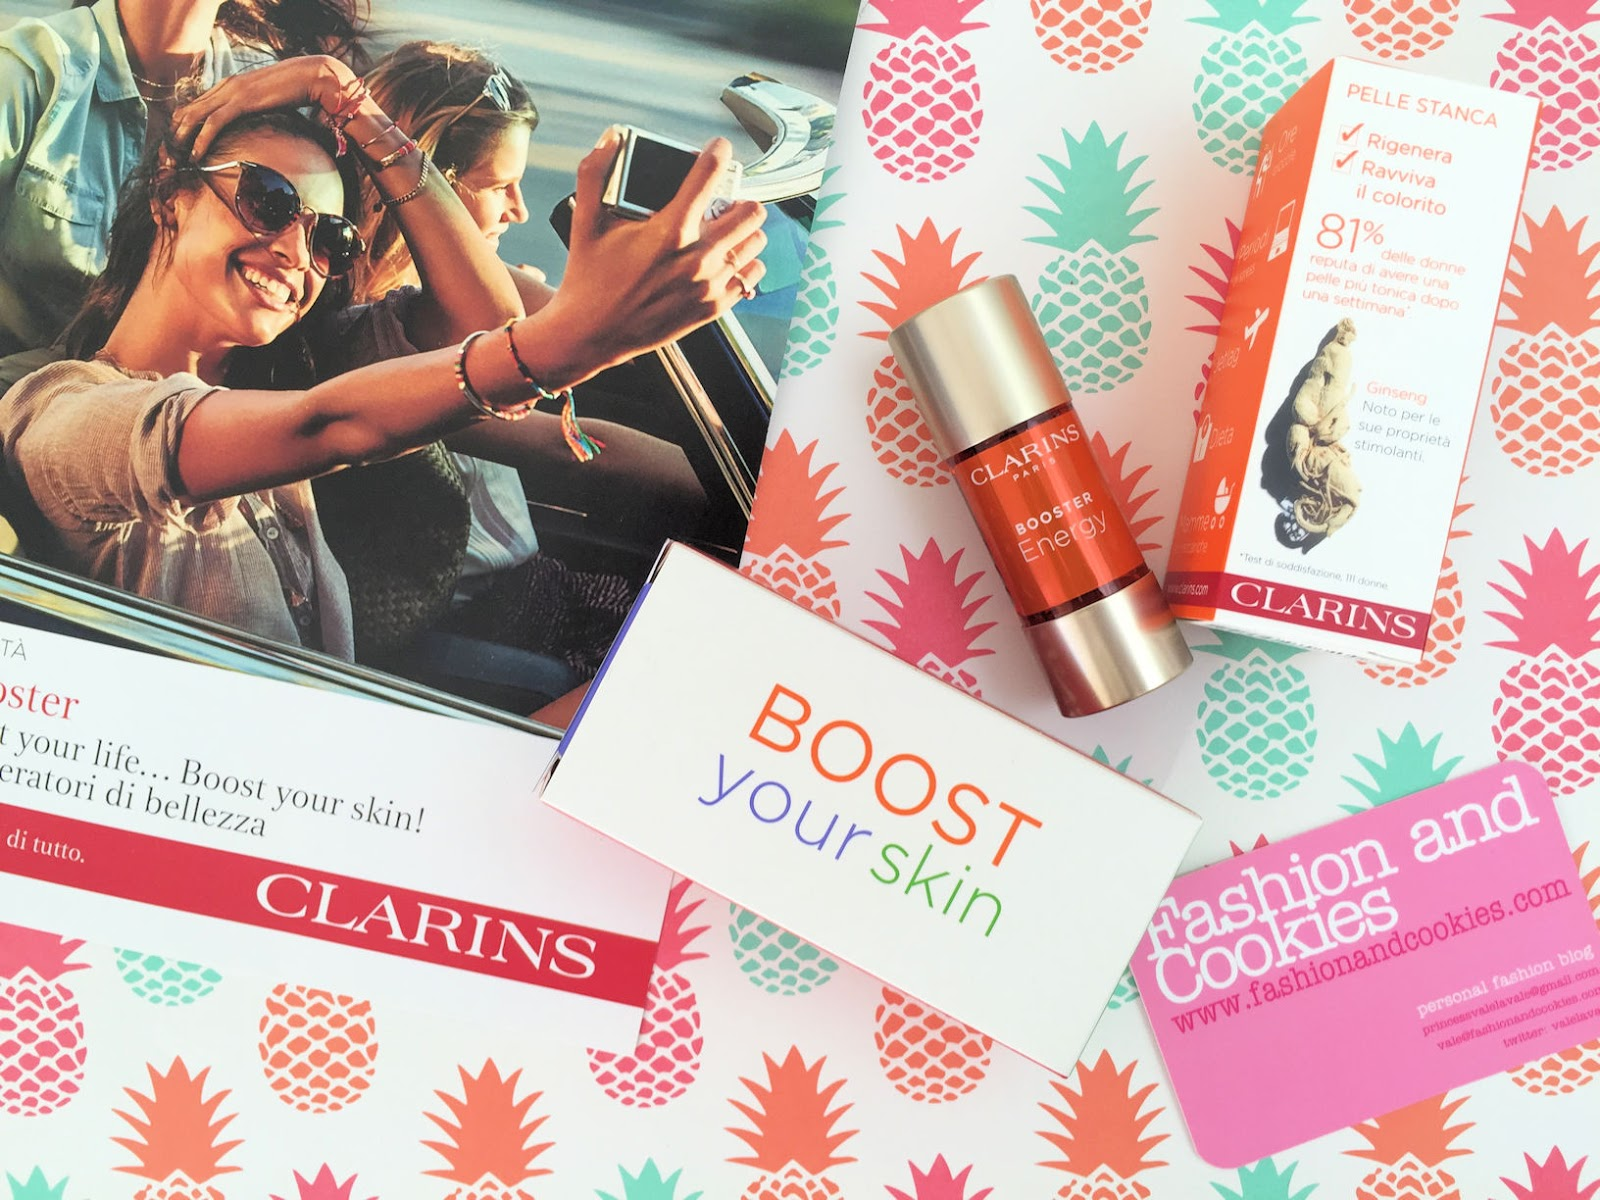 Clarins Booster Energy review on Fashion and Cookies beauty blog, beauty blogger